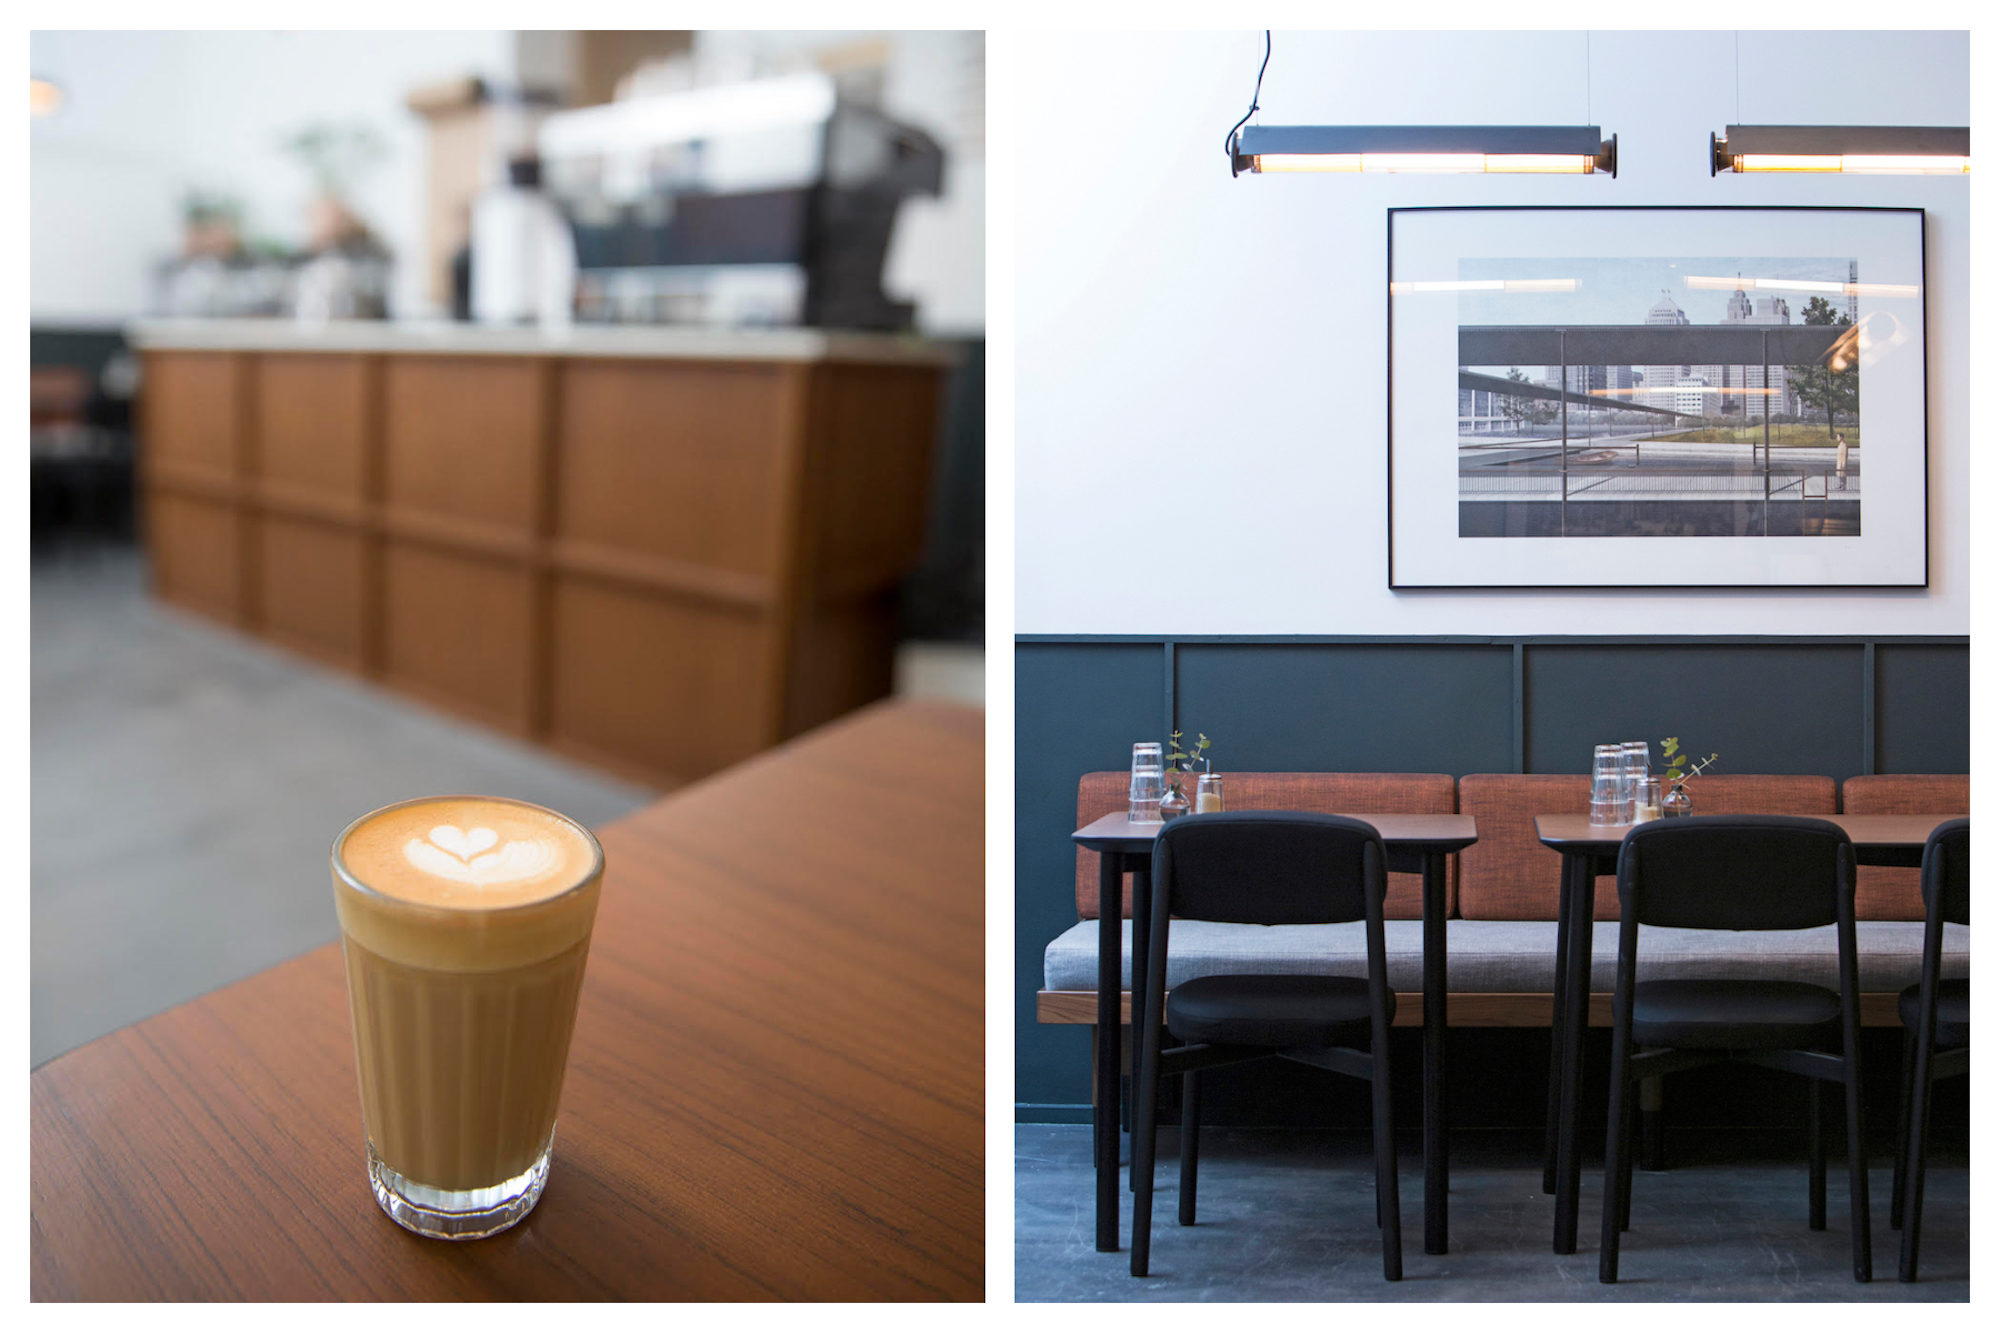 Residence Kann coffee shop in Paris and creamy Cappuccino in a small glass (left) and Designer Furniture (right).